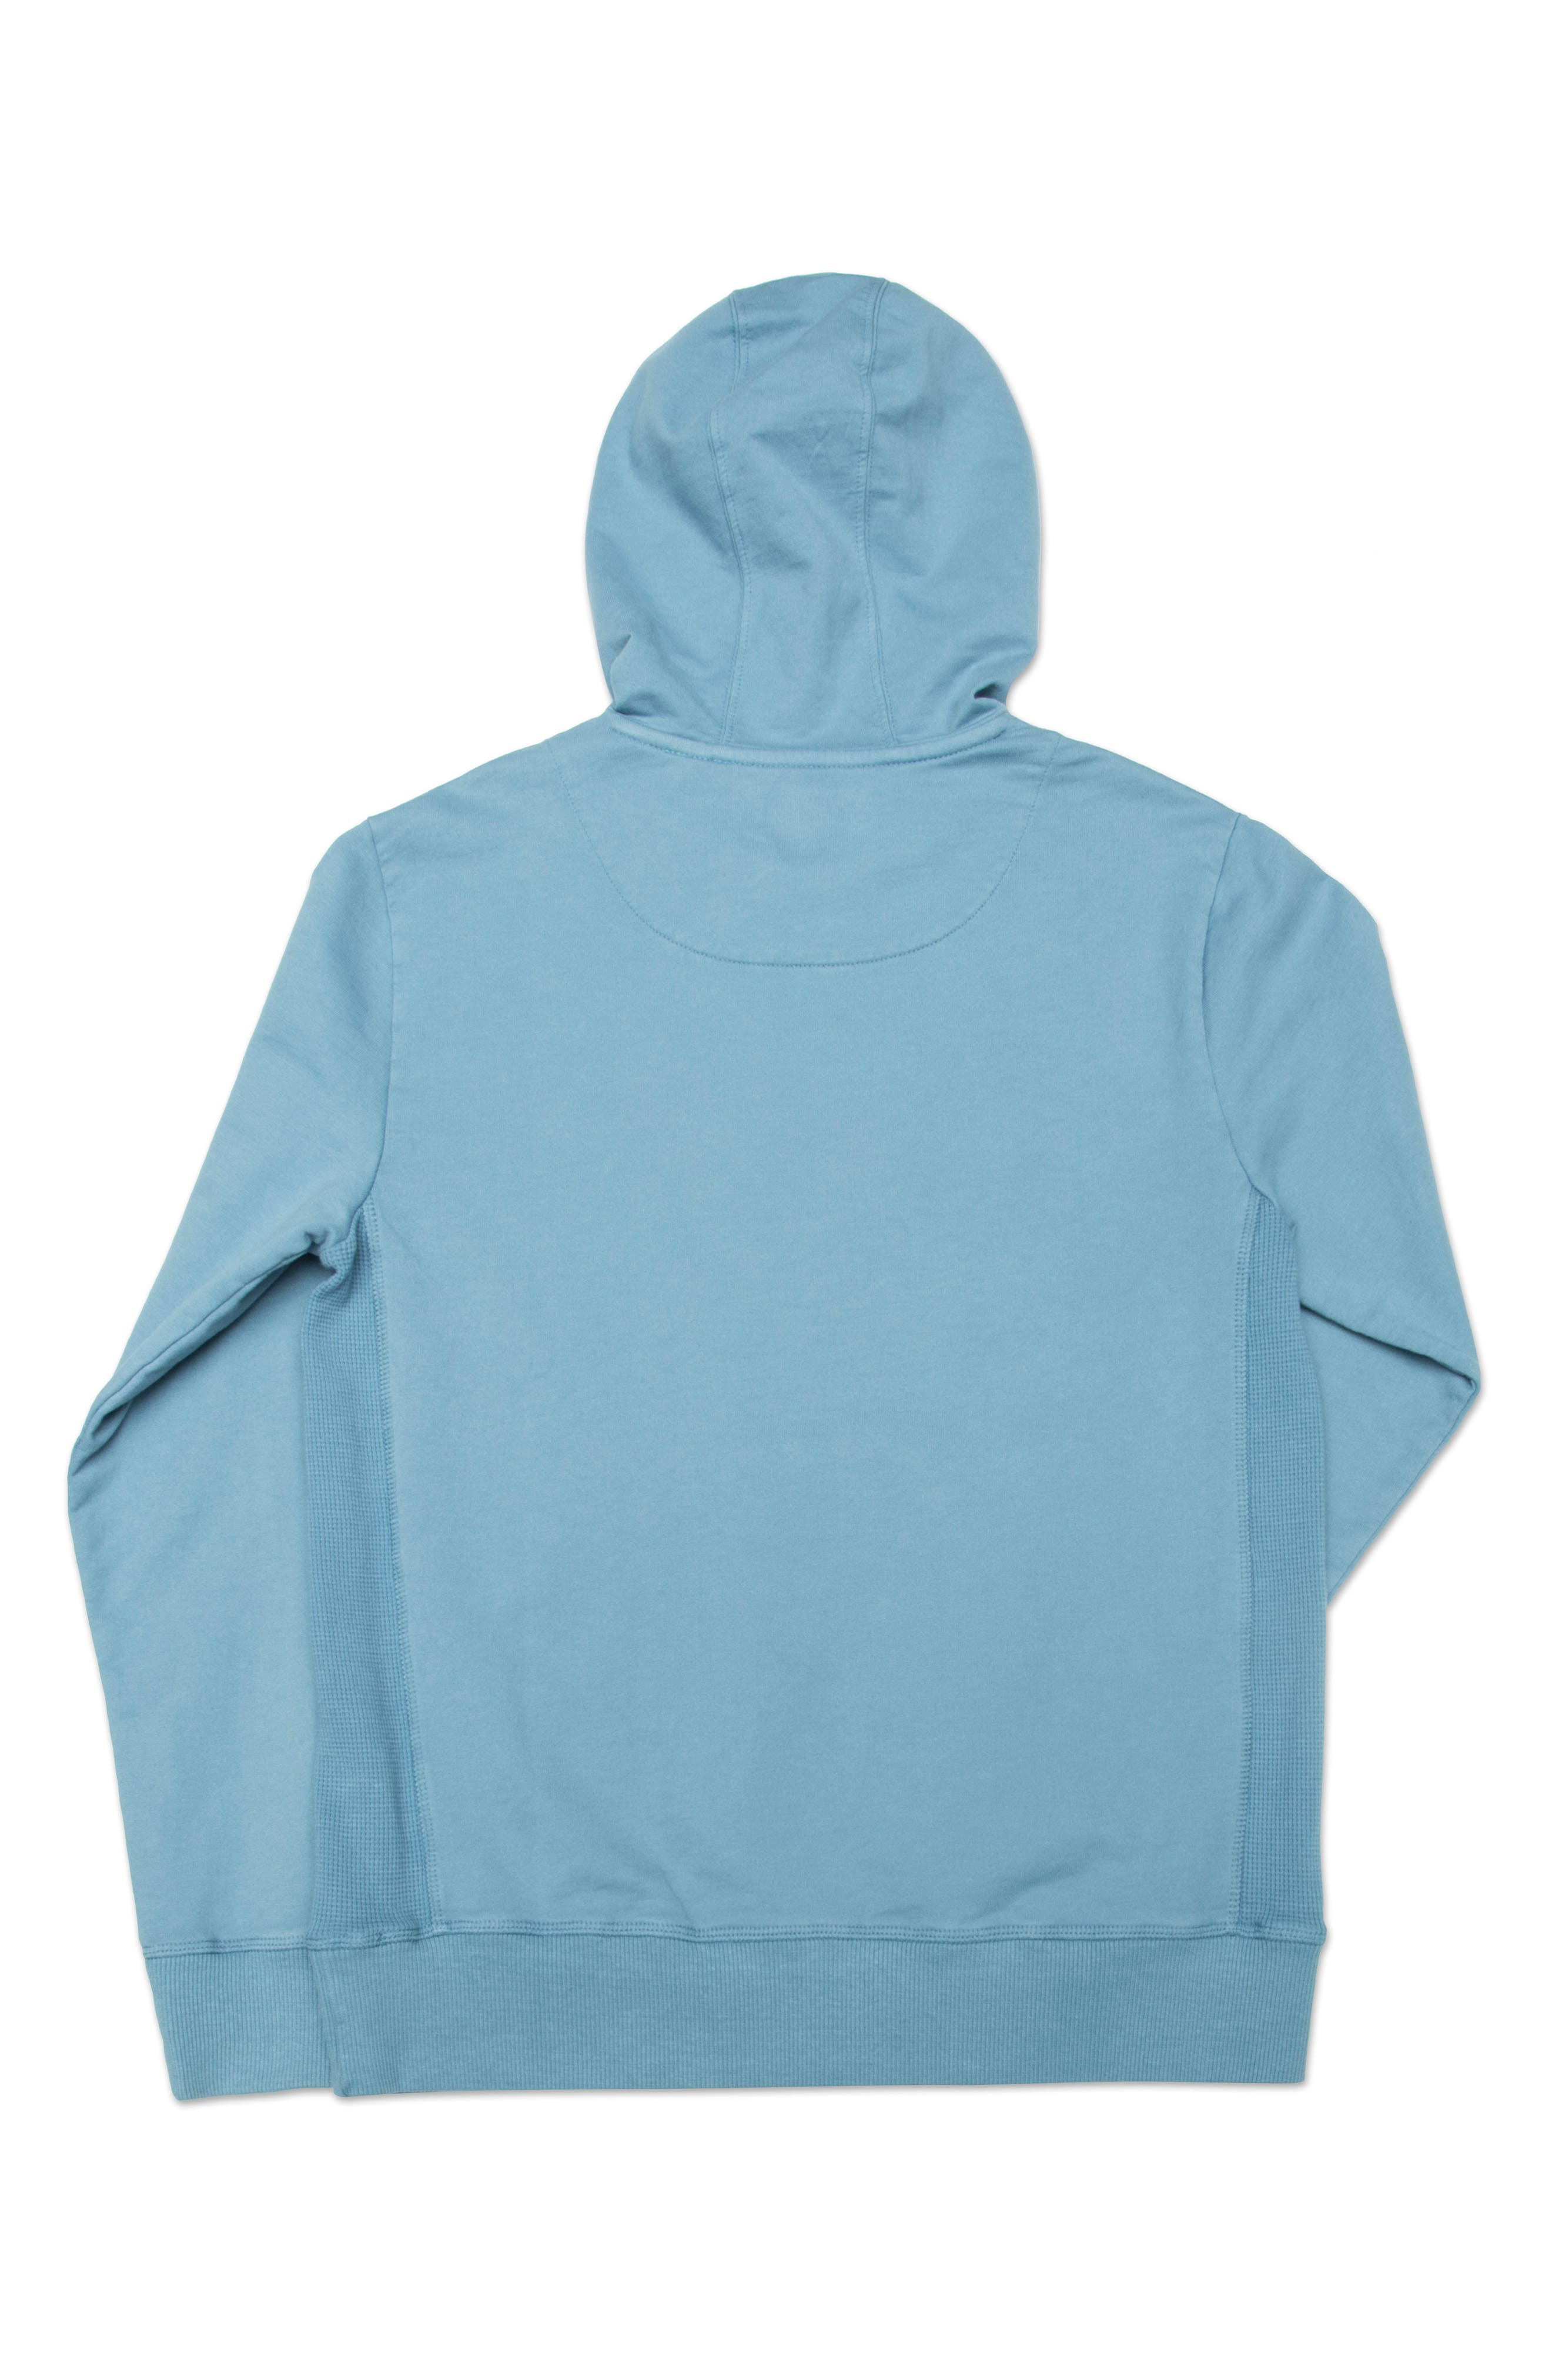 AG ADRIANO GOLDSCHMIED KIDS,                             Cain Hoodie,                             Alternate thumbnail 2, color,                             416